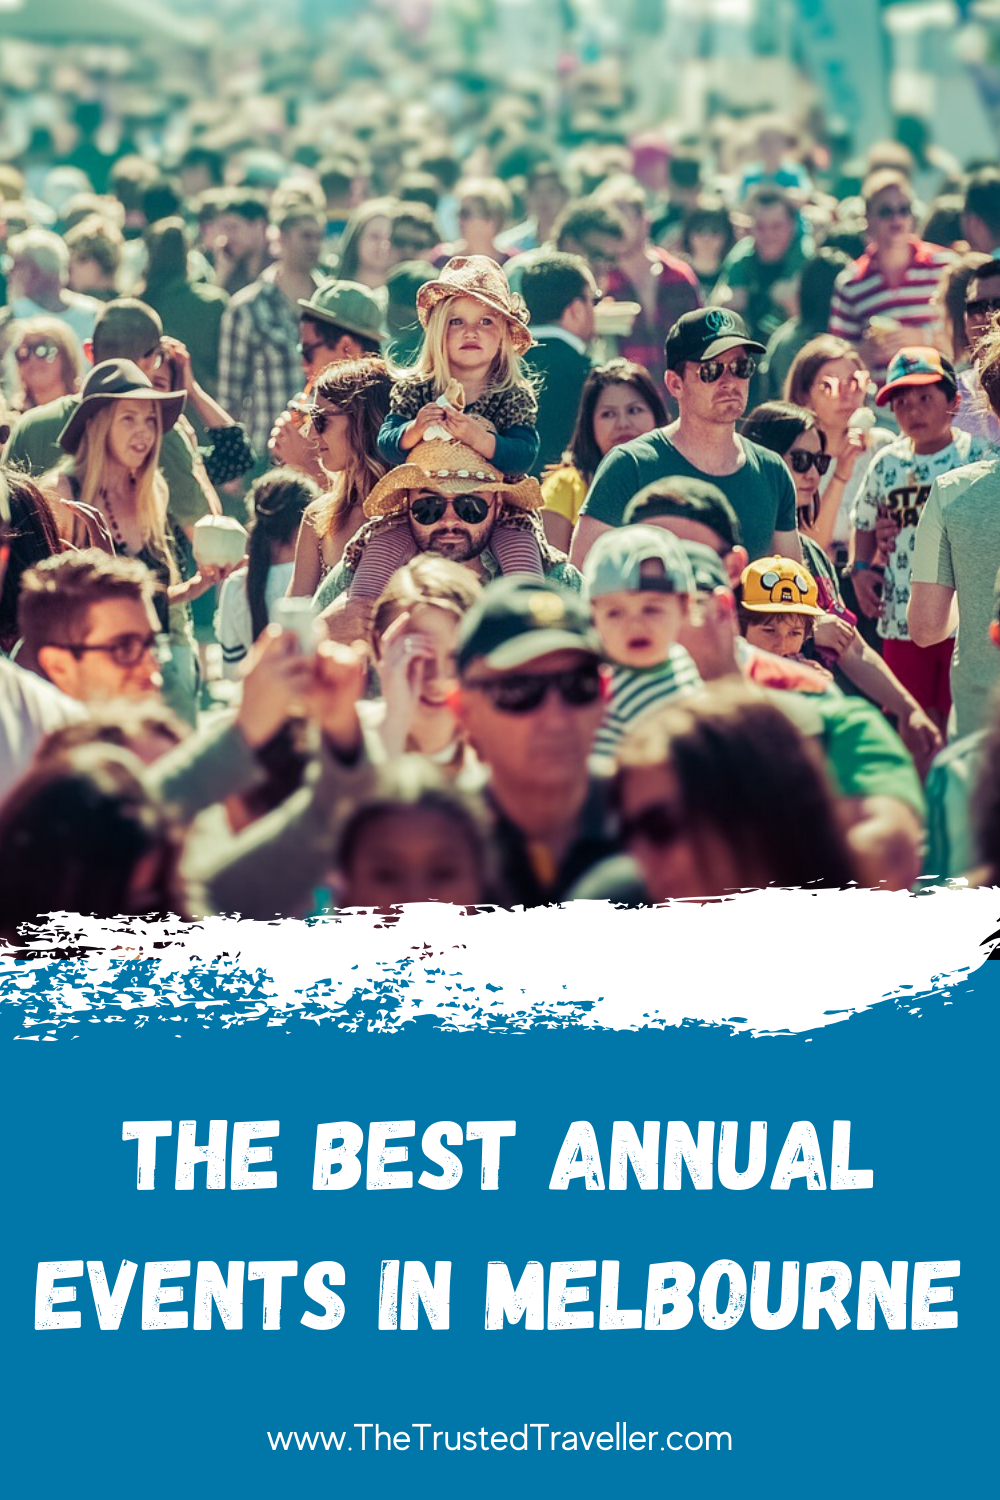 The Best Annual Events in Melbourne - The Trusted Traveller